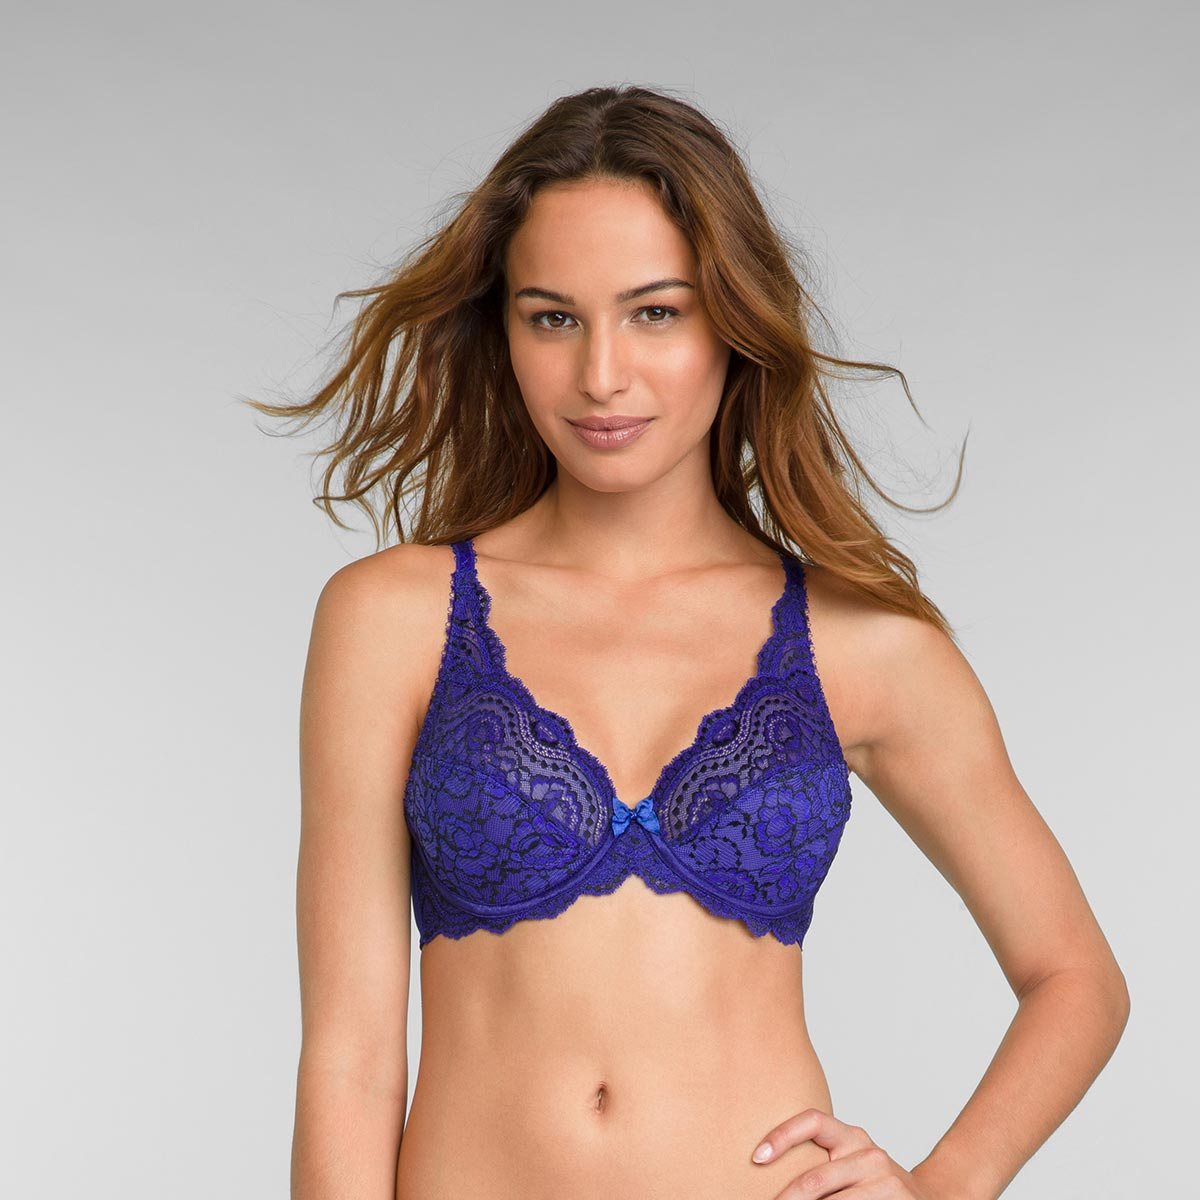 Full Cup Lace Bra in Intense Blue Flower Elegance, , PLAYTEX